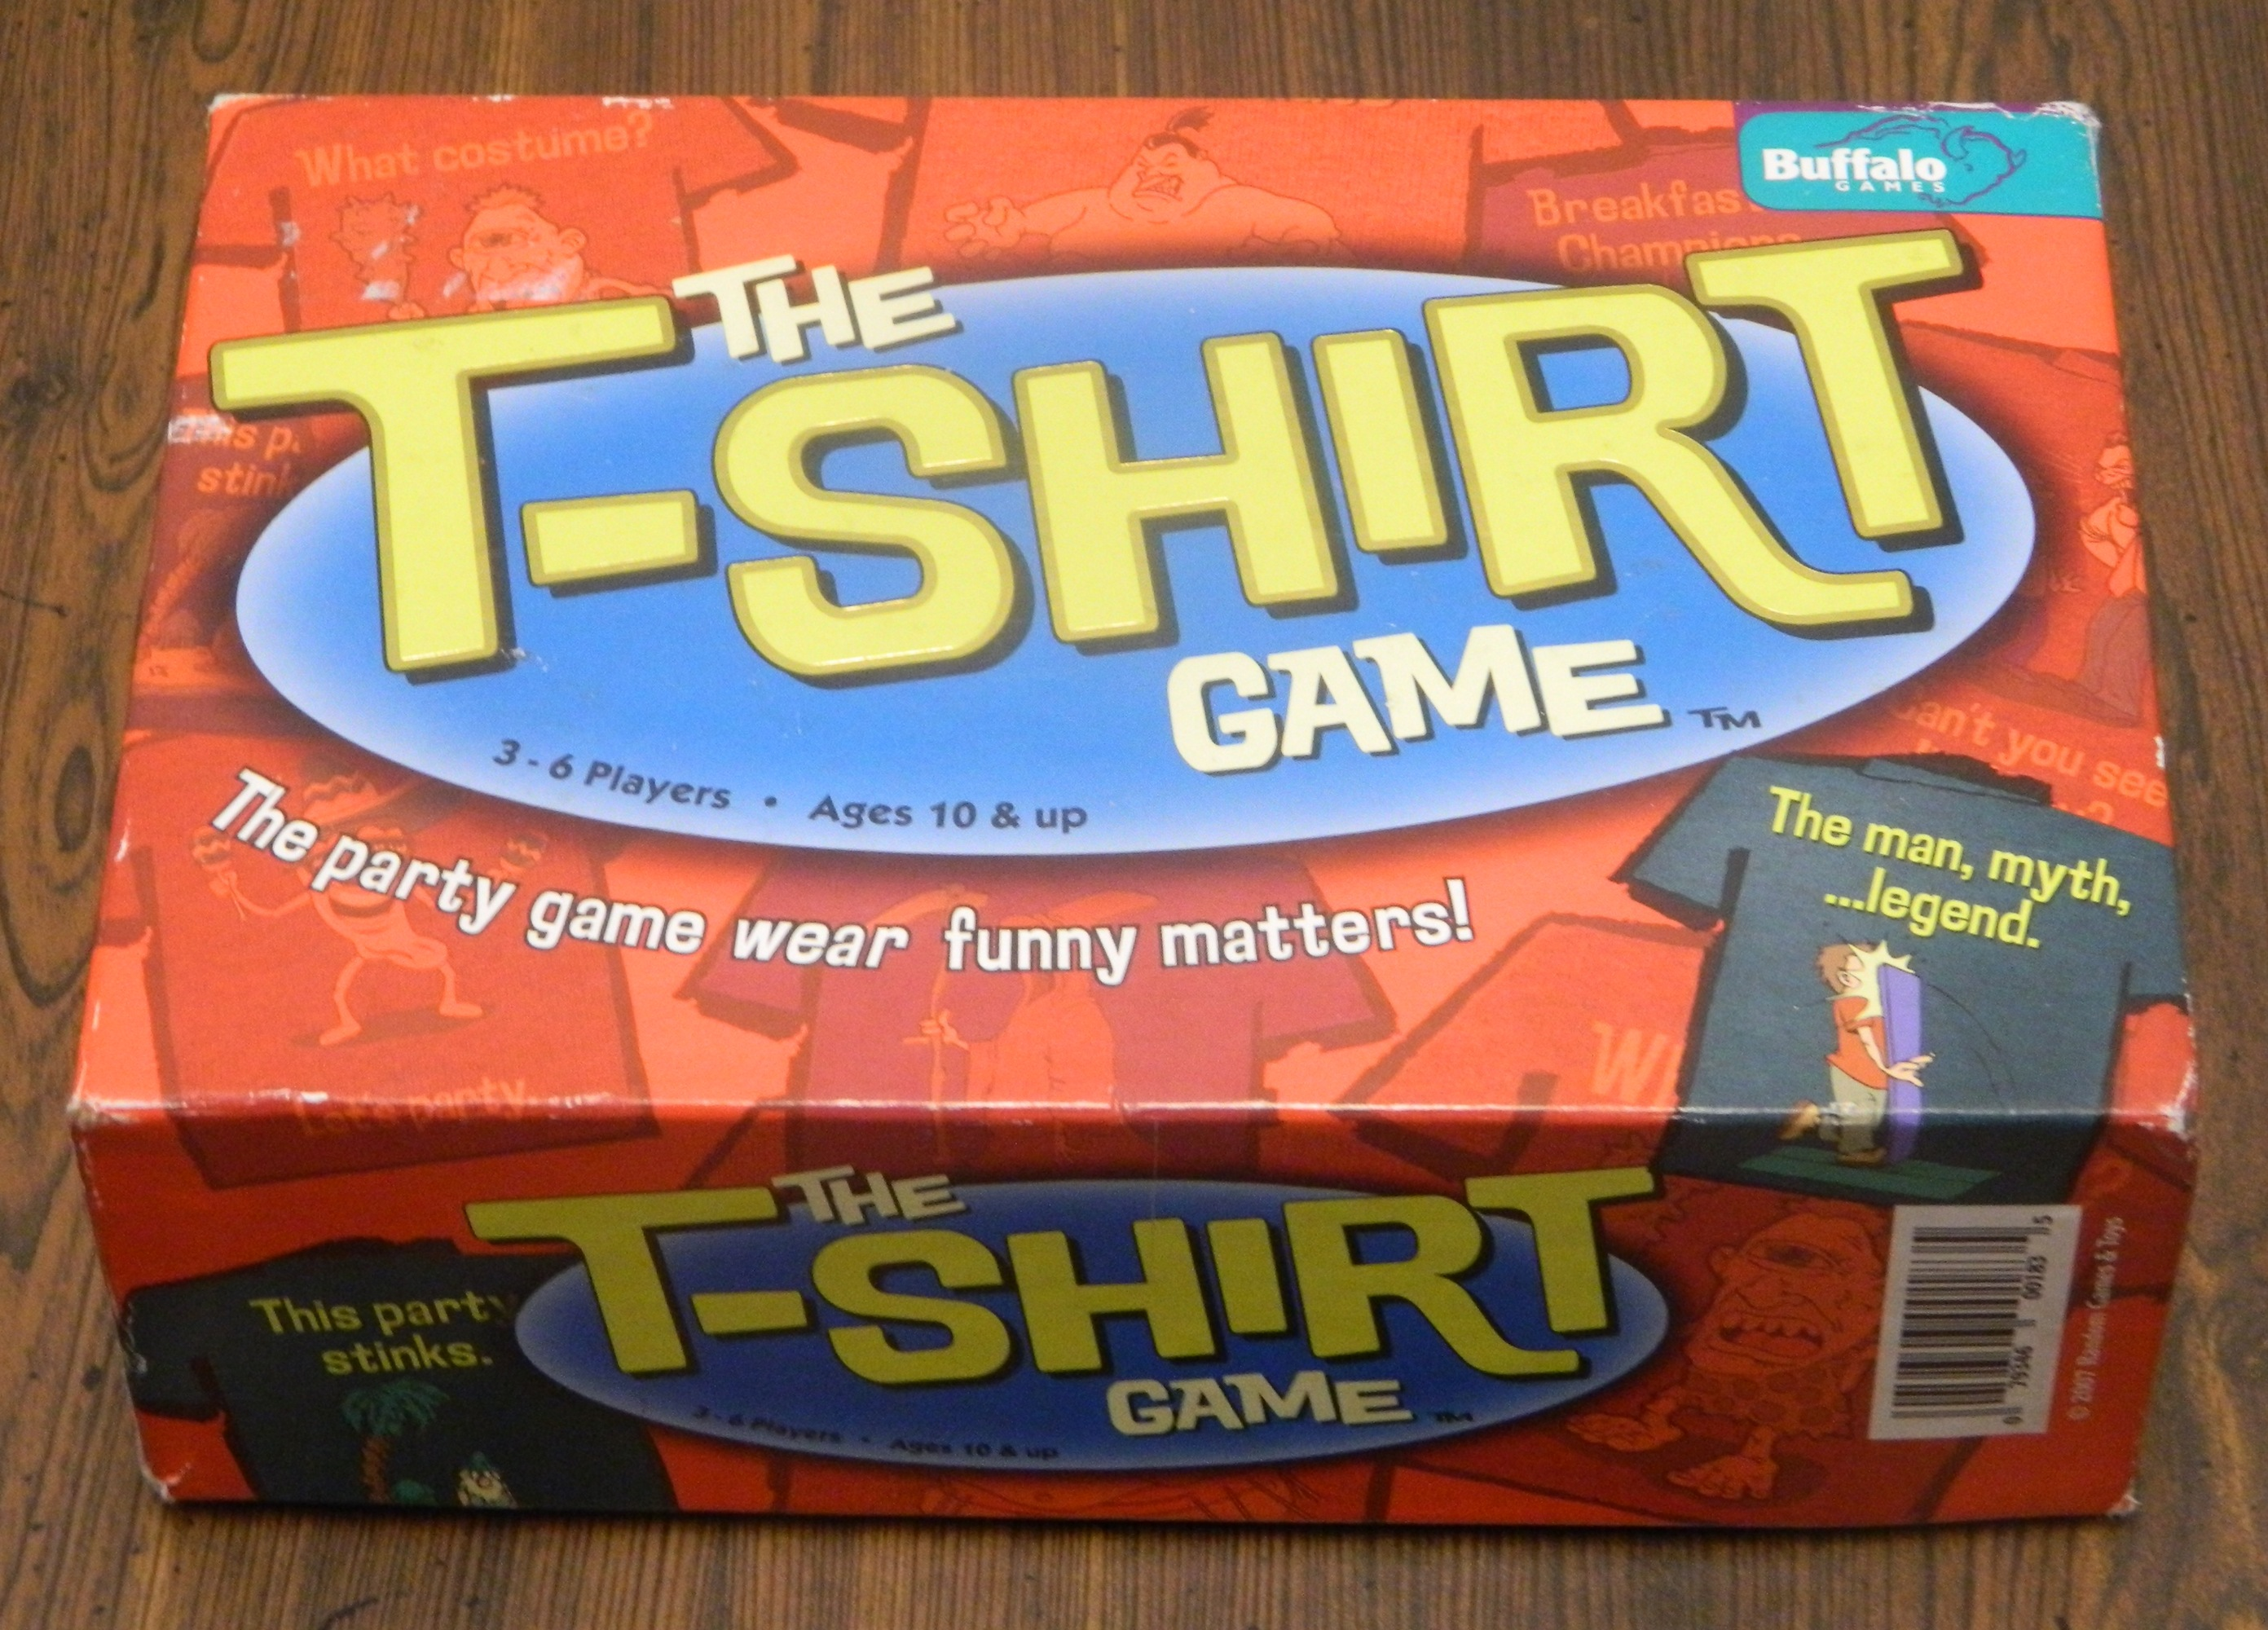 The T-Shirt Game Party Game Box